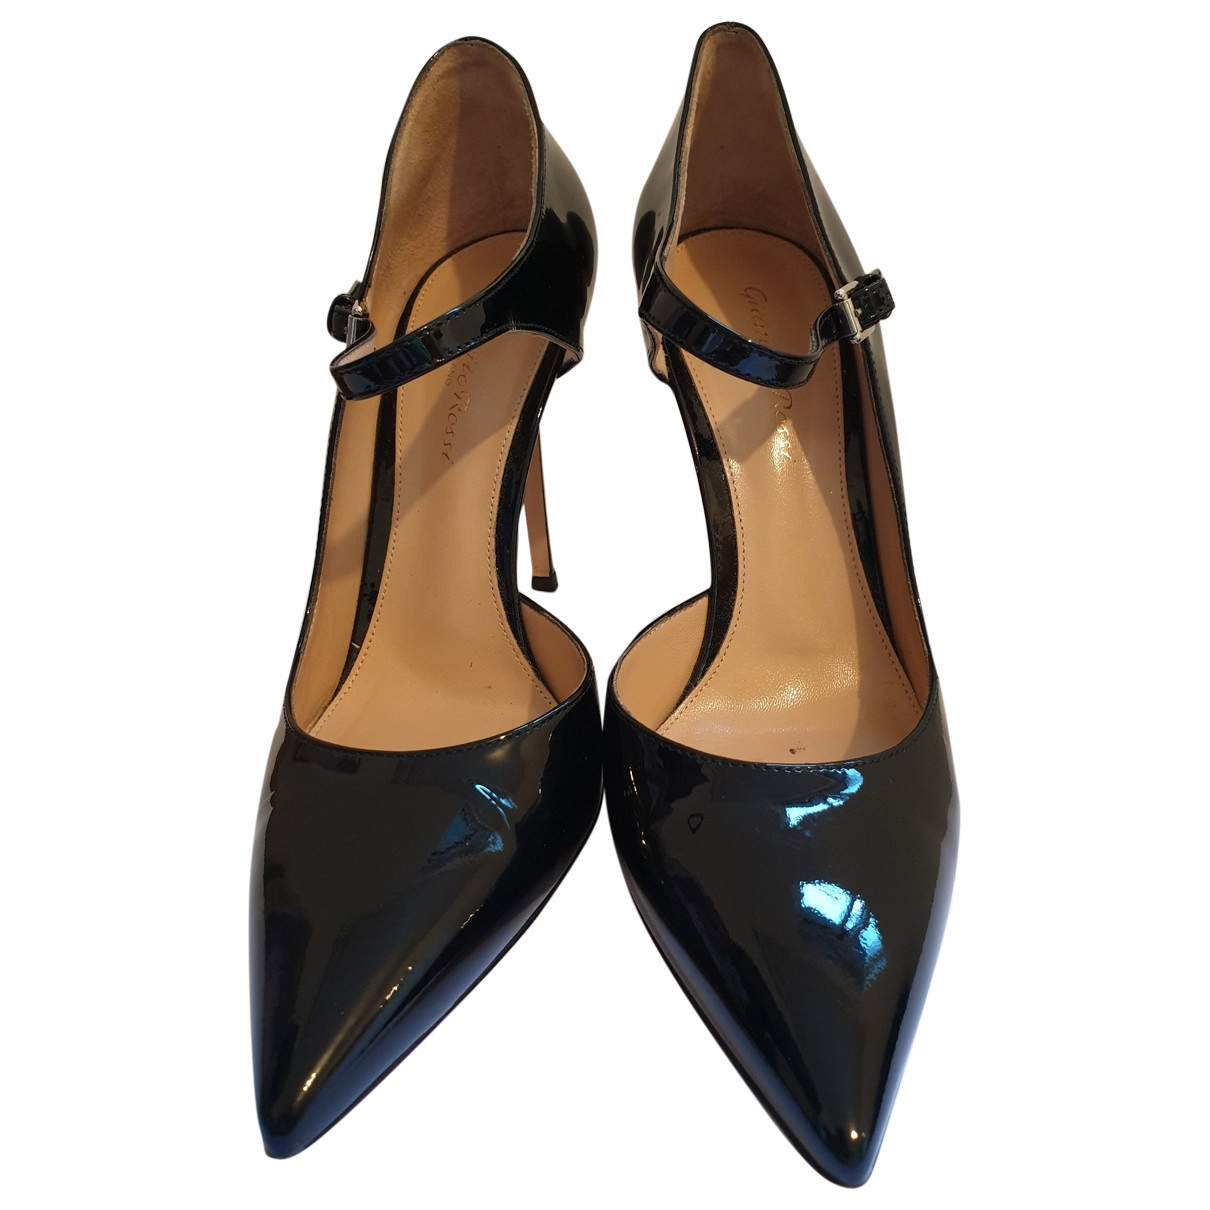 Gianvito Rossi \N Black Patent leather Heels for Women 38 EU